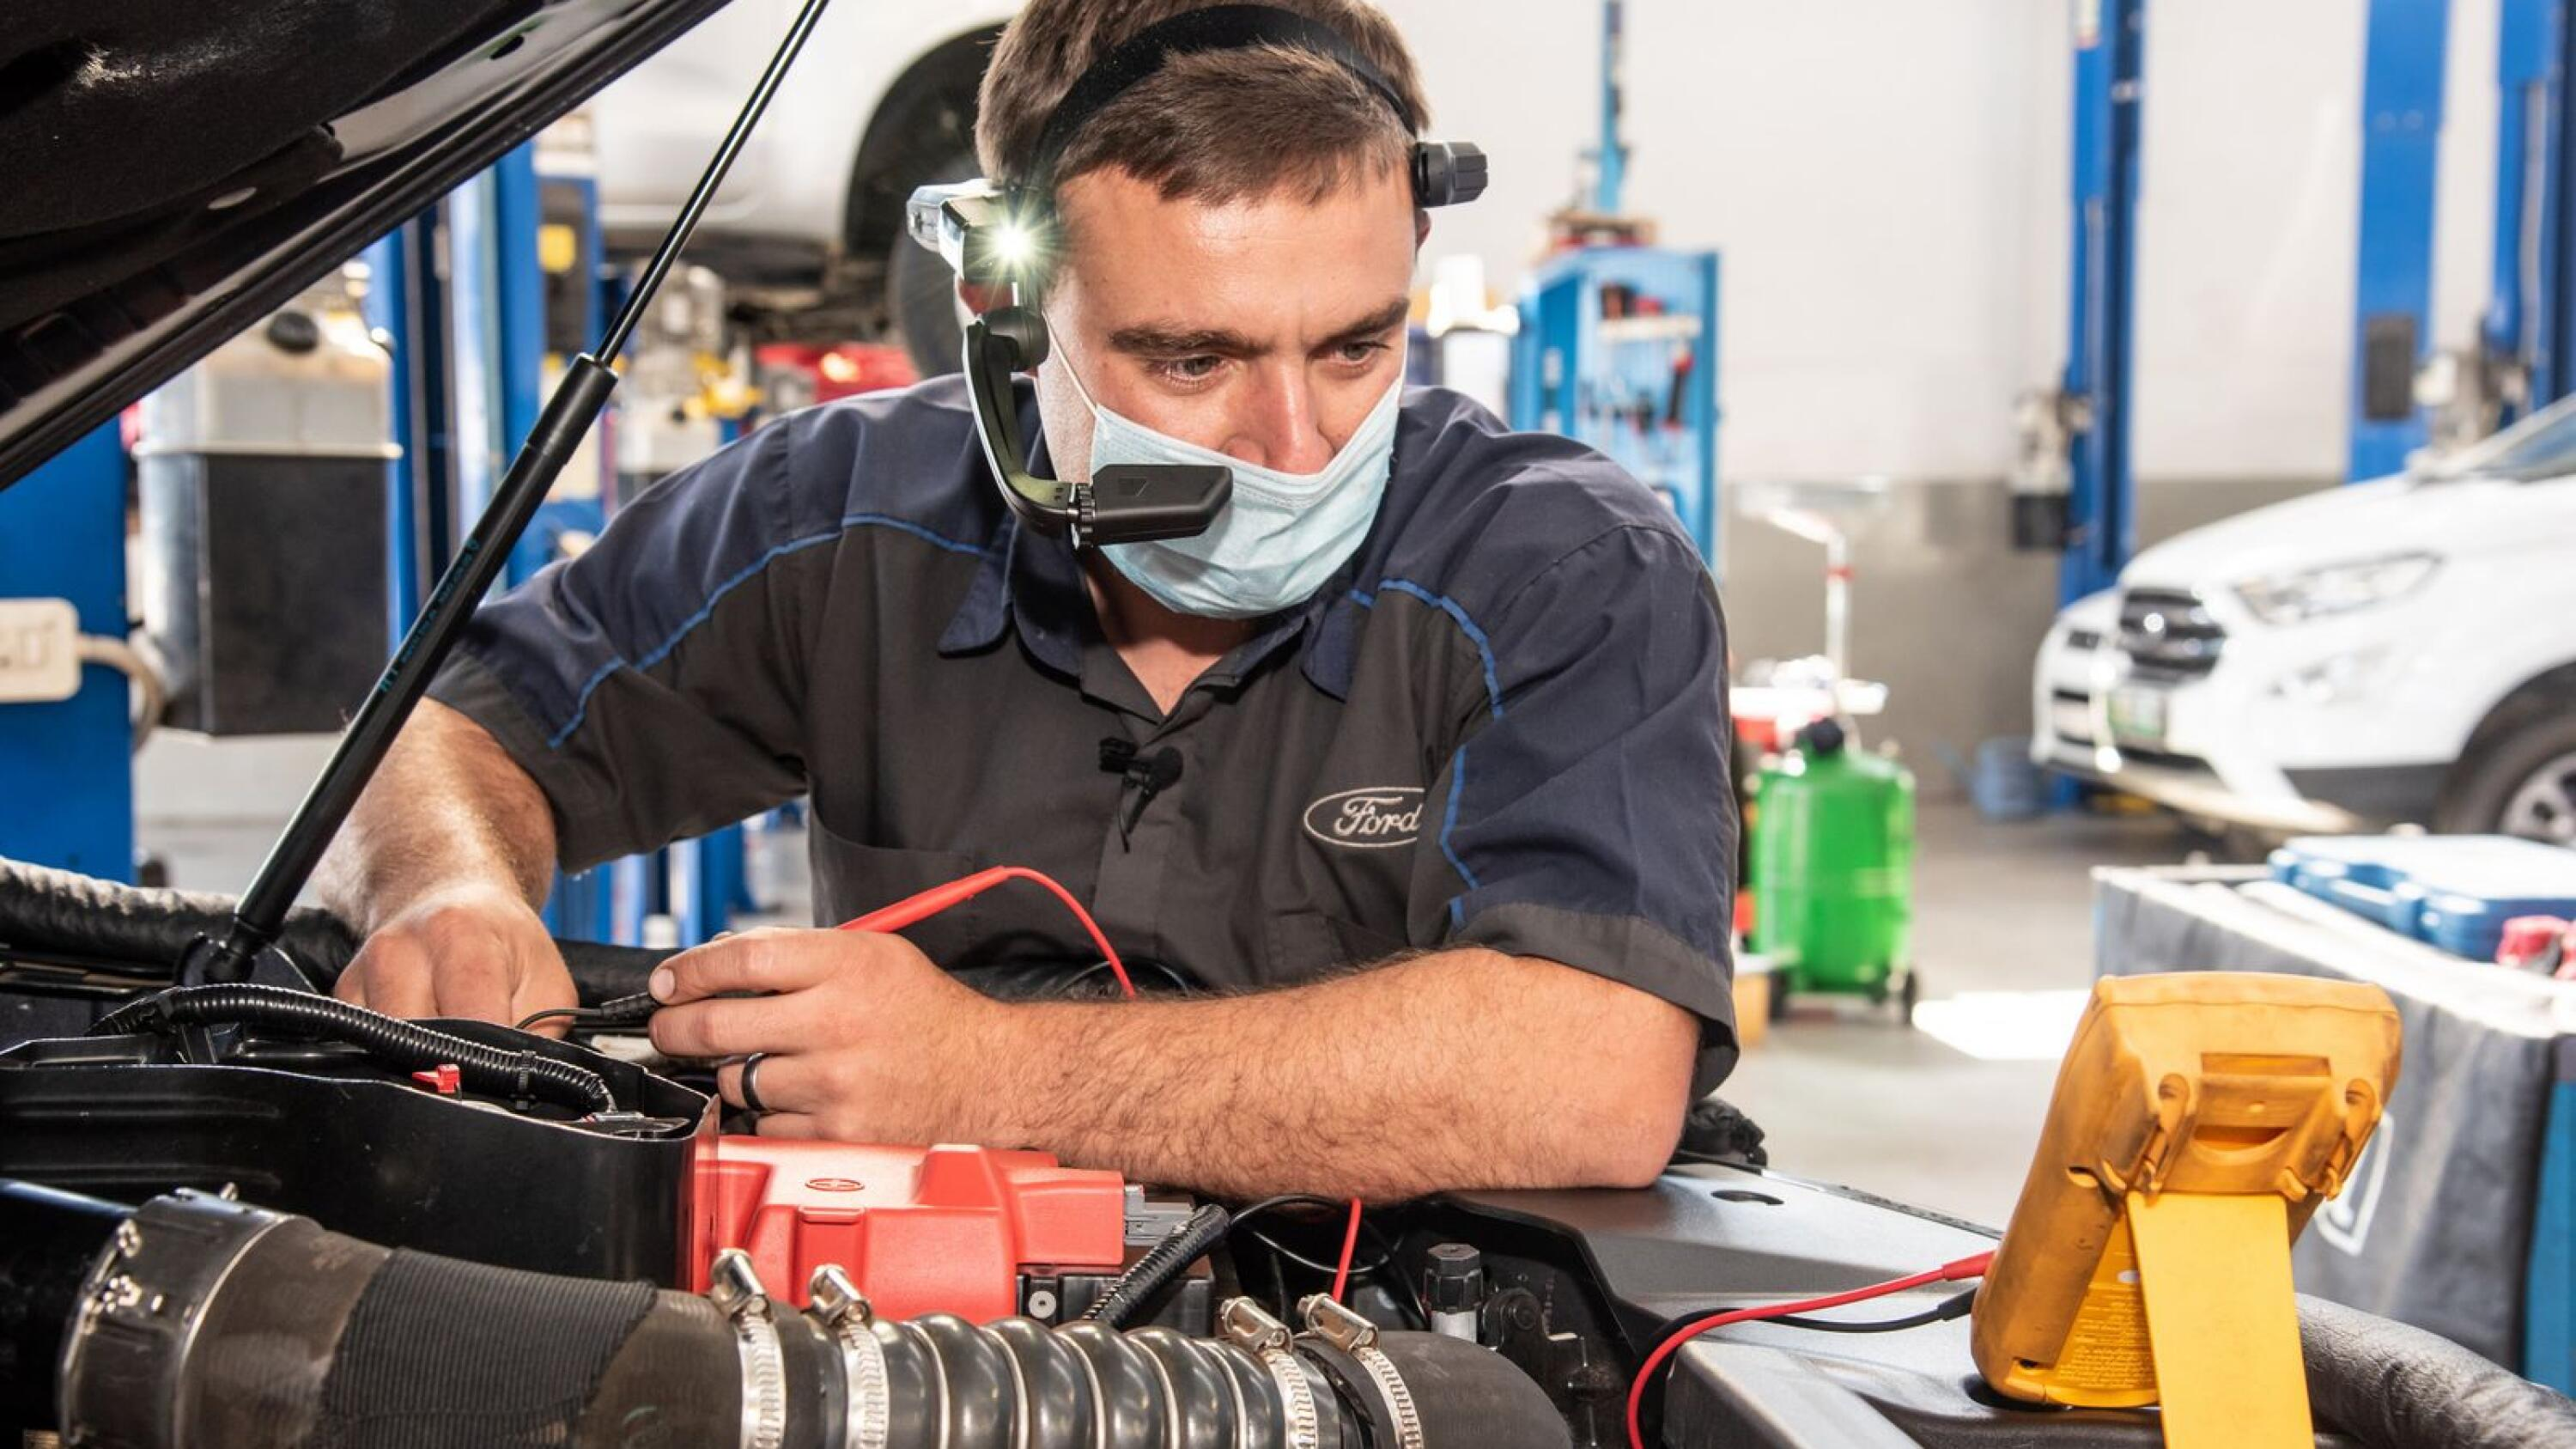 A Ford technician works on a customer's vehicle using an augmented reality headset.